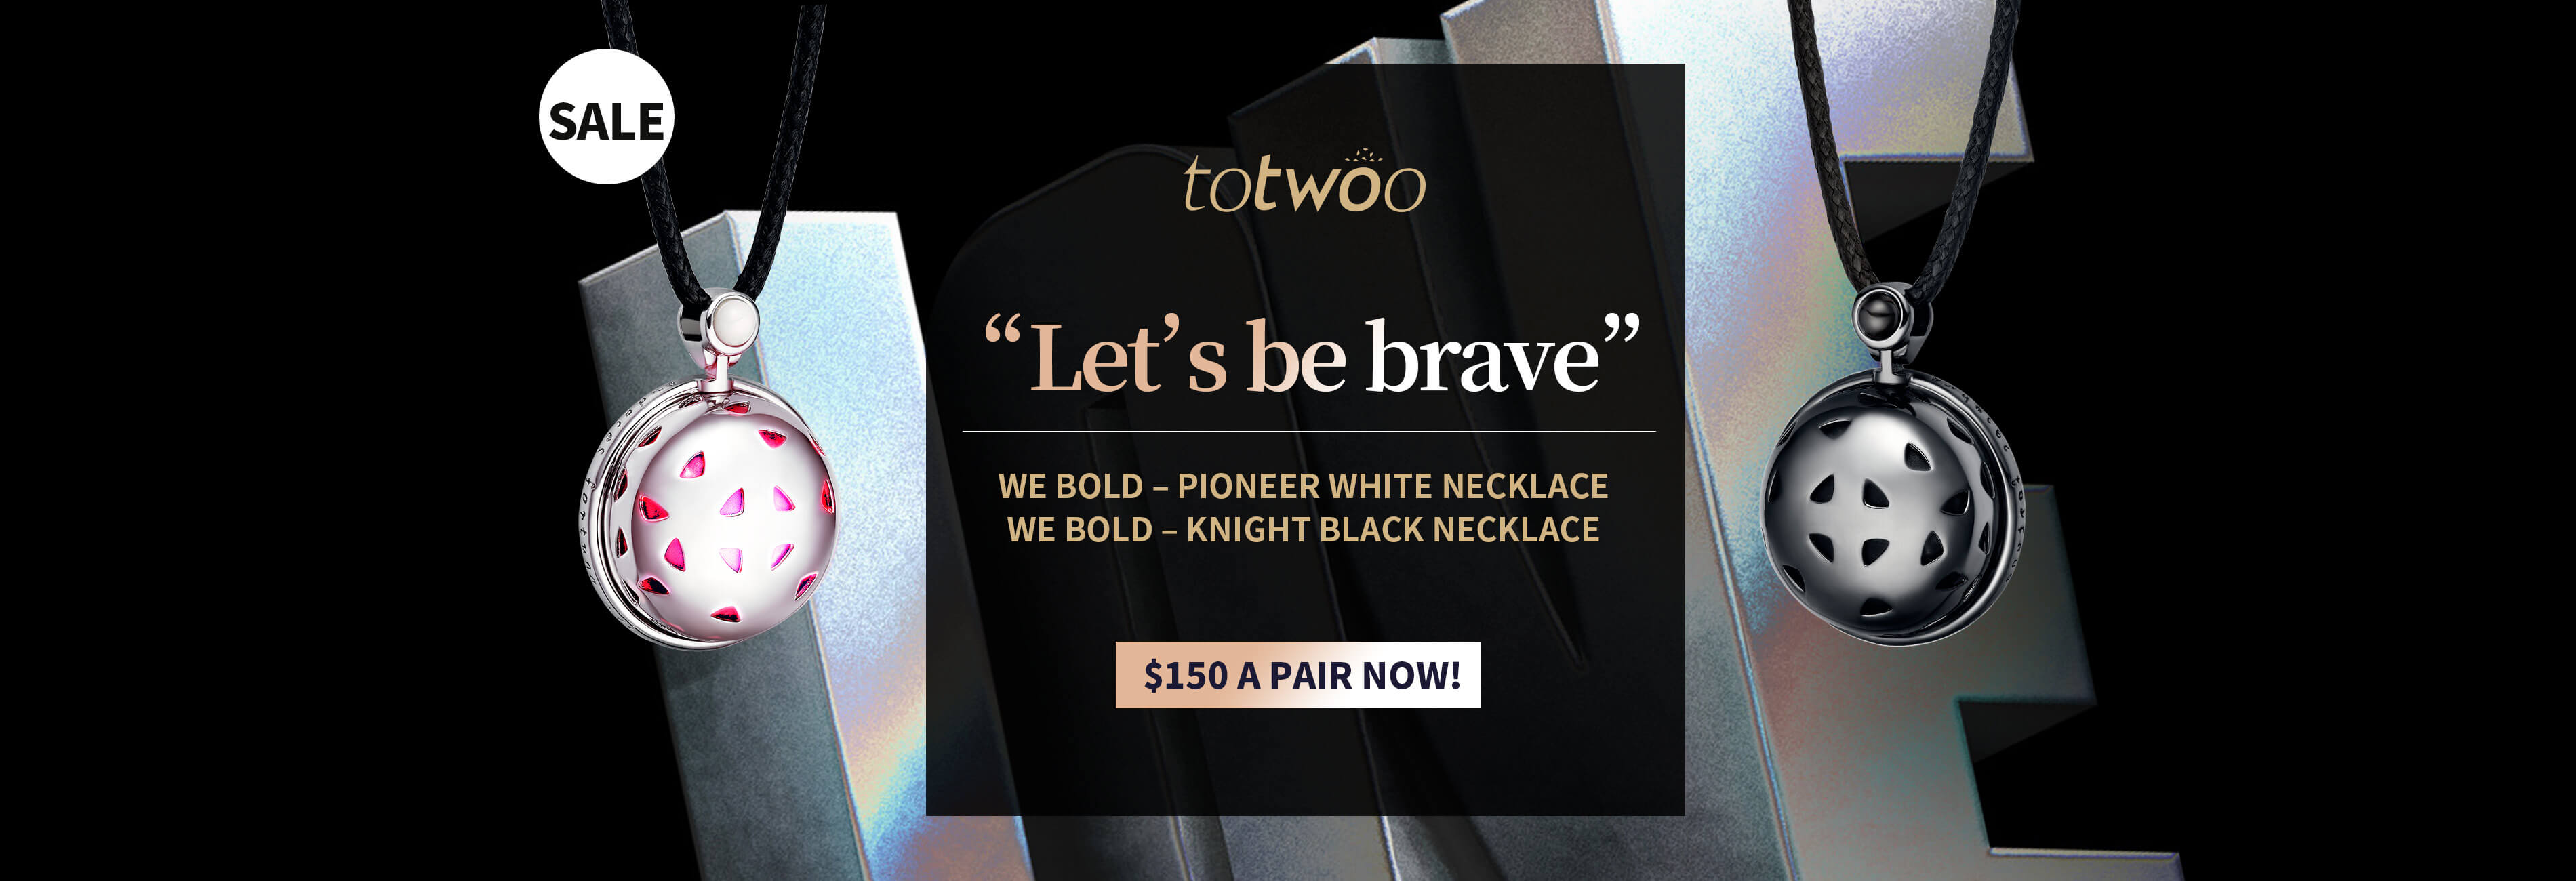 Totwoo we bold necklace